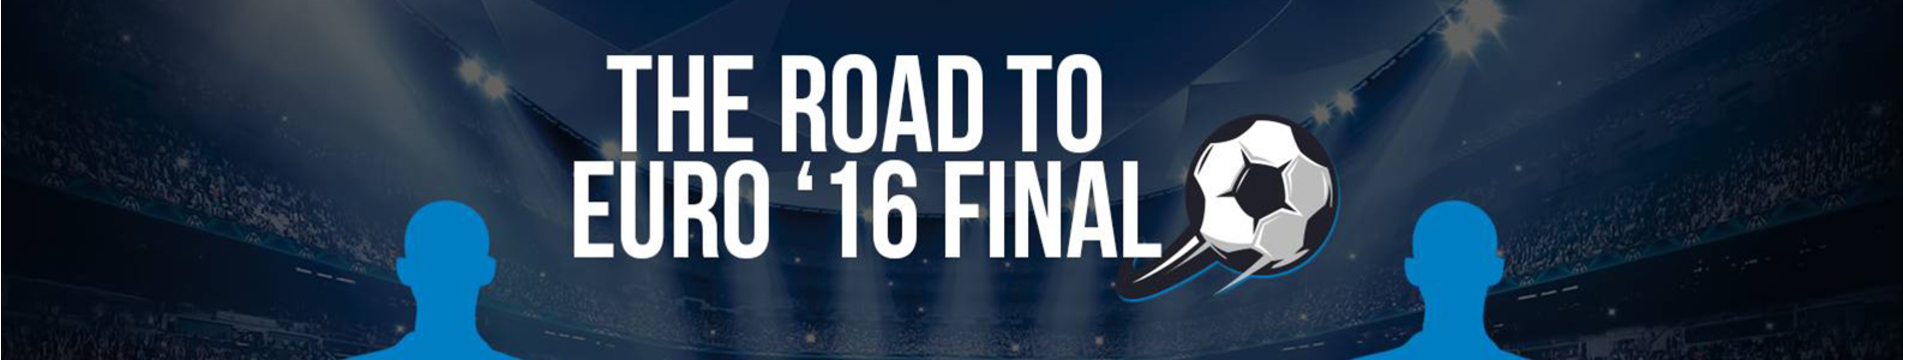 the-road-to-the-euro-2016-final.jpg